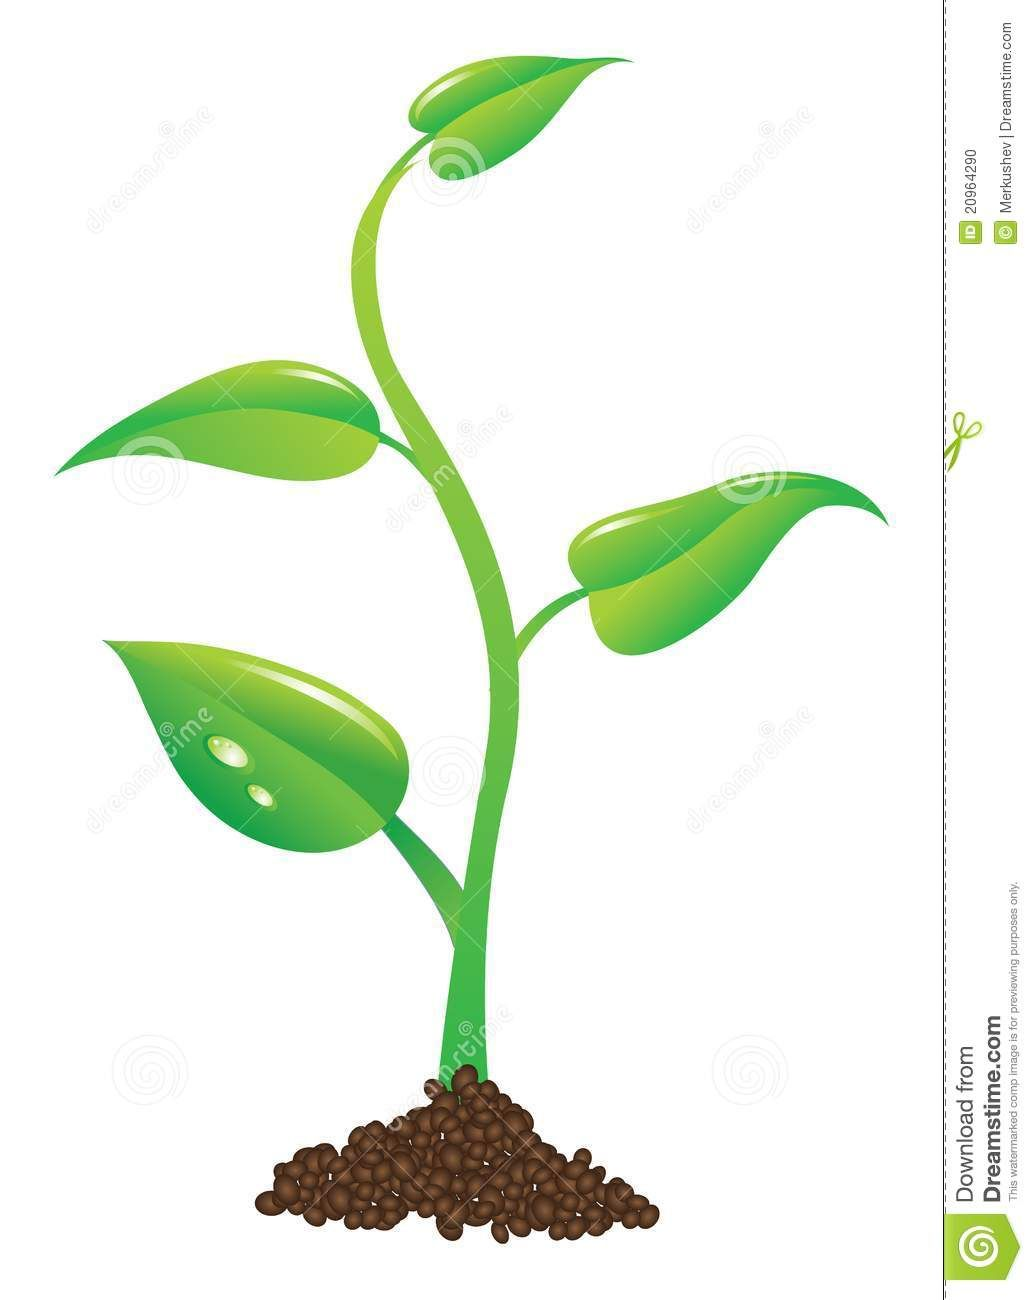 hight resolution of plant sprout clipart google search